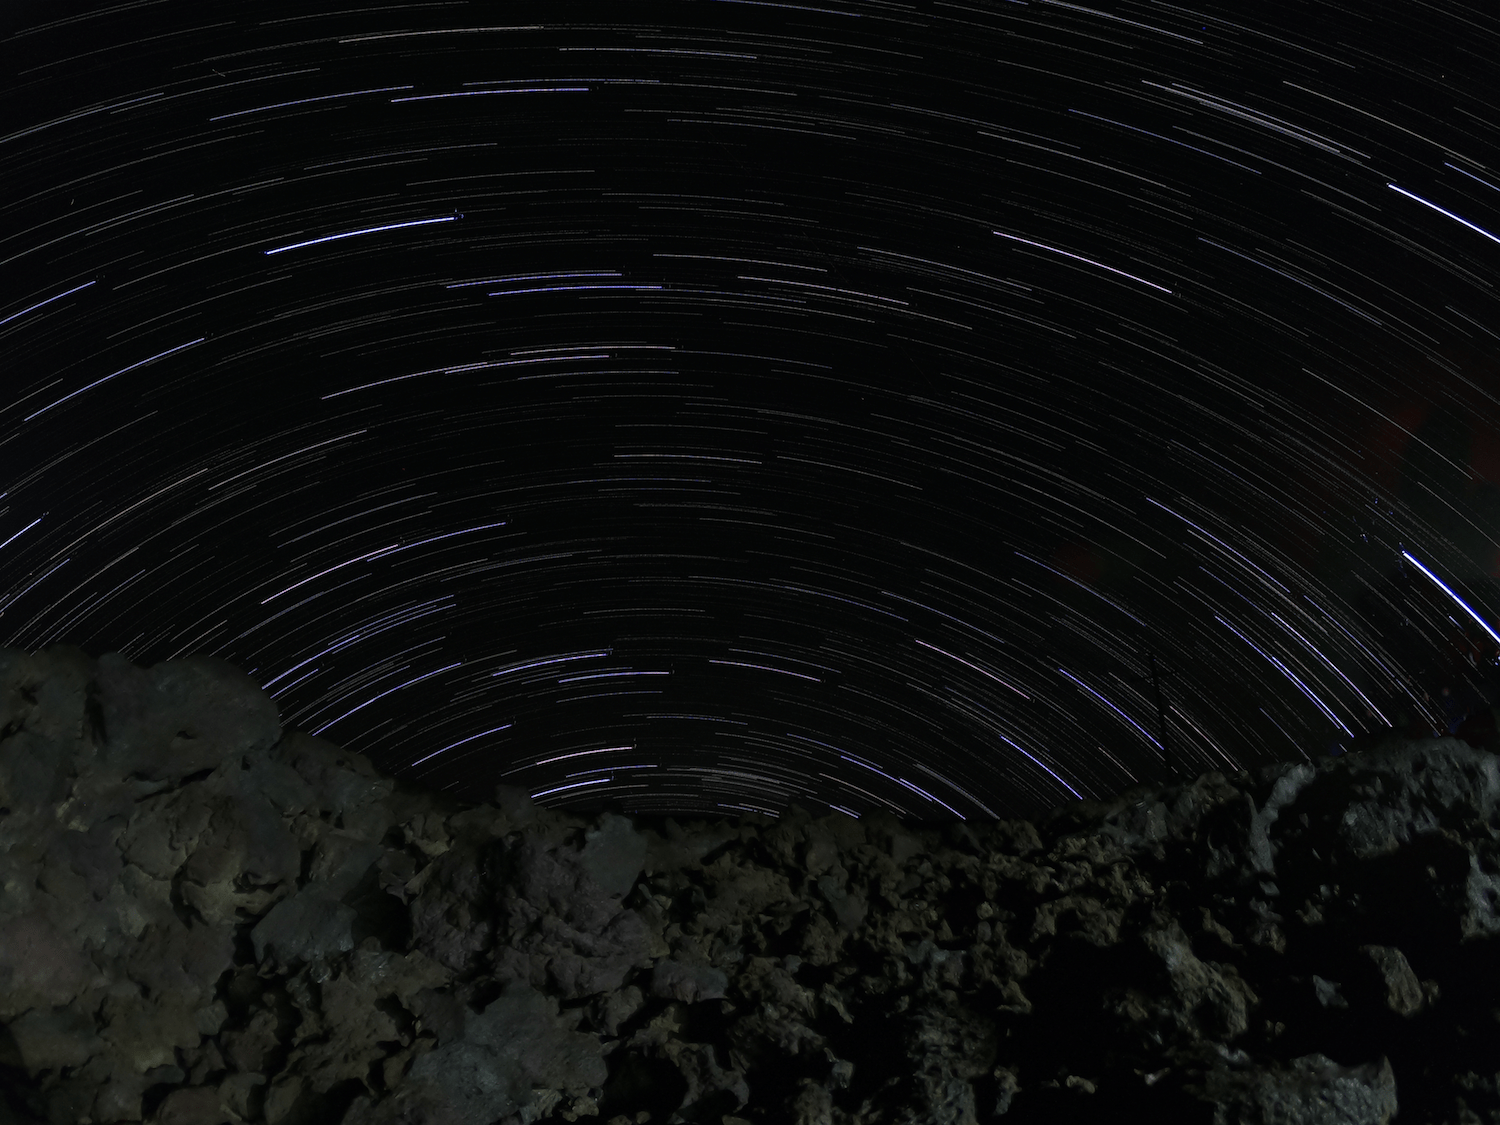 3 Days on Hawaii - Star Trail